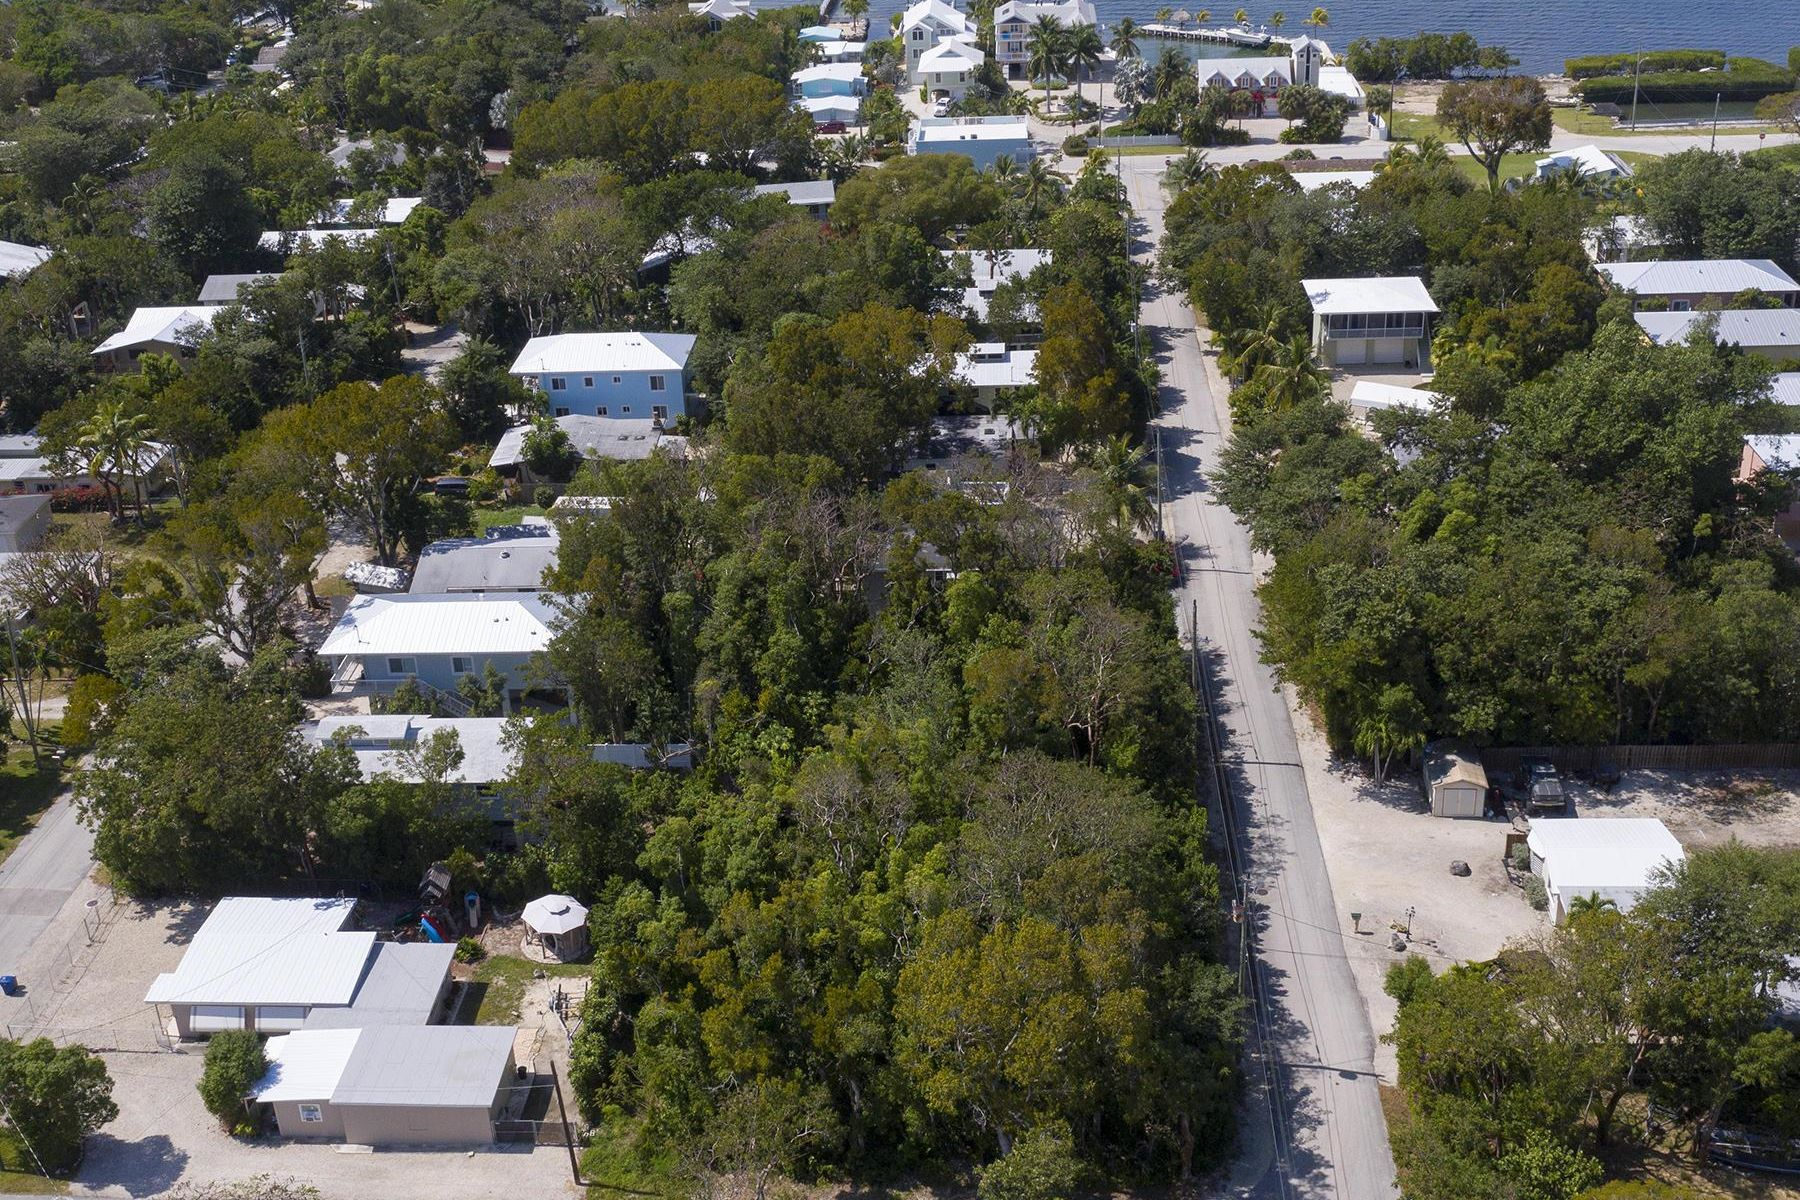 Land for Sale at 29 Dolphin Road, #1, Key Largo, FL 29 Dolphin Road, 1, Key Largo, Florida 33037 United States